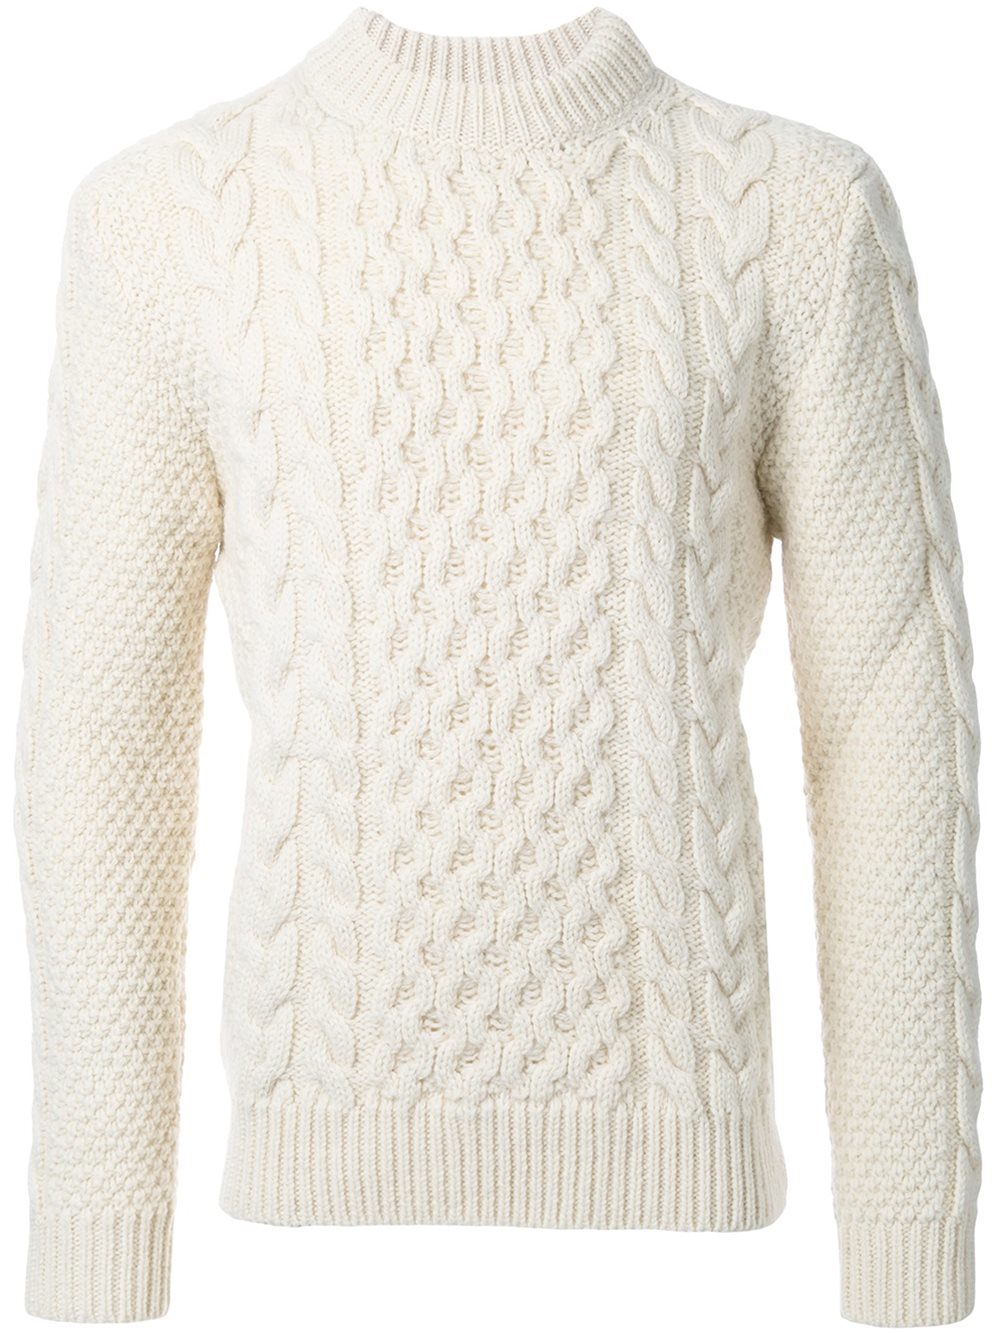 Saint laurent Classic Fisherman Mock Turtleneck Sweater in White ...